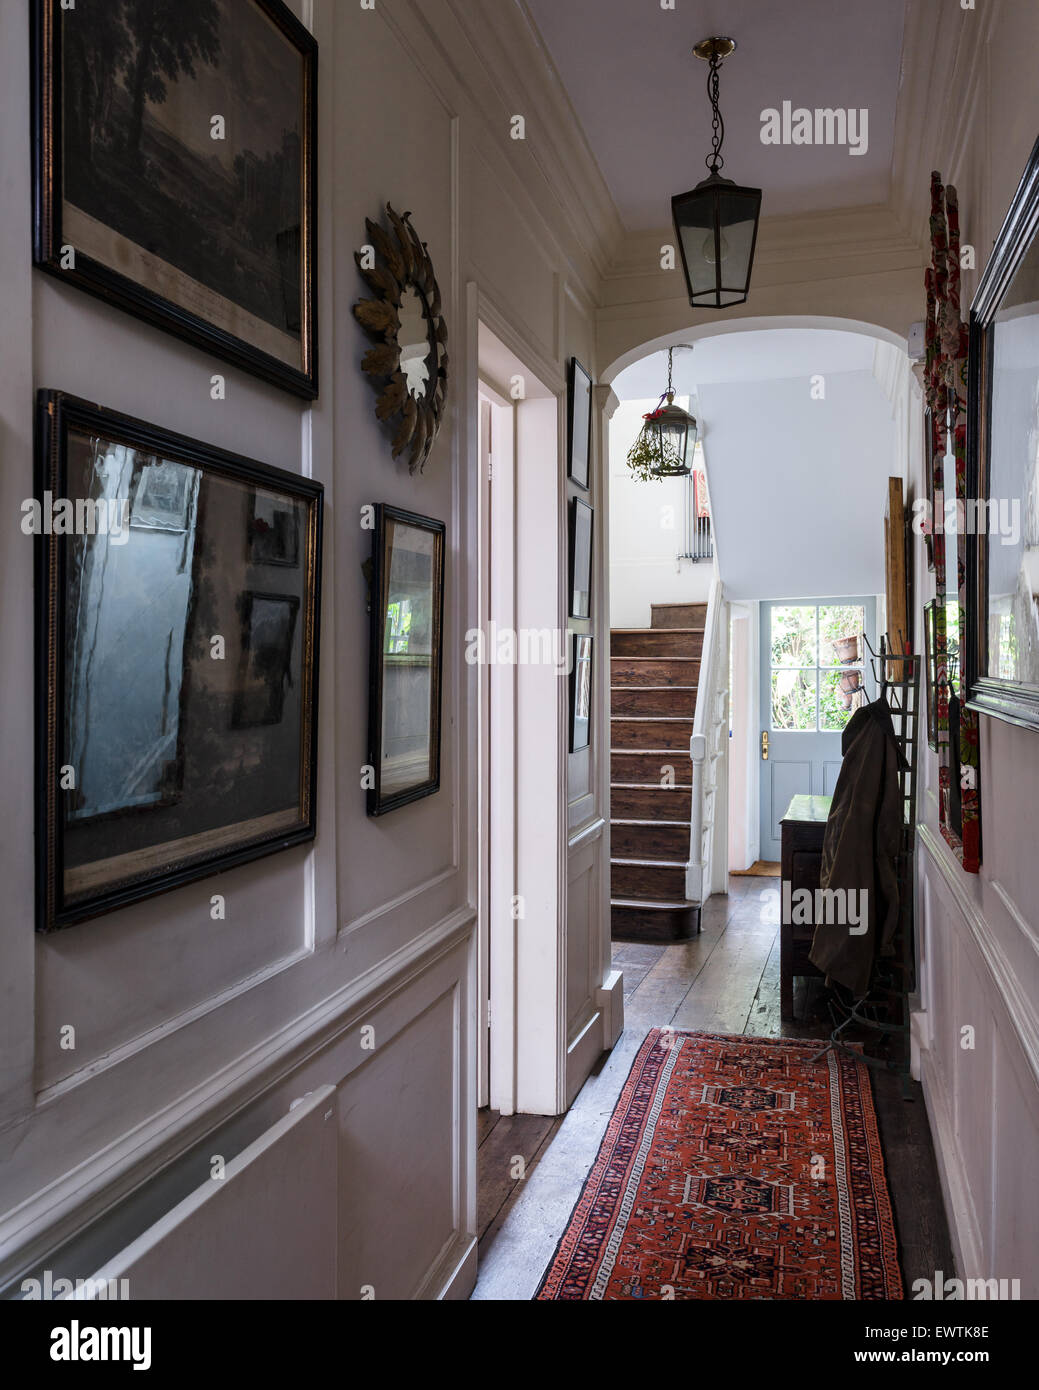 Townhouse entrance hall with framed landscape prints and red persian runner - Stock Image